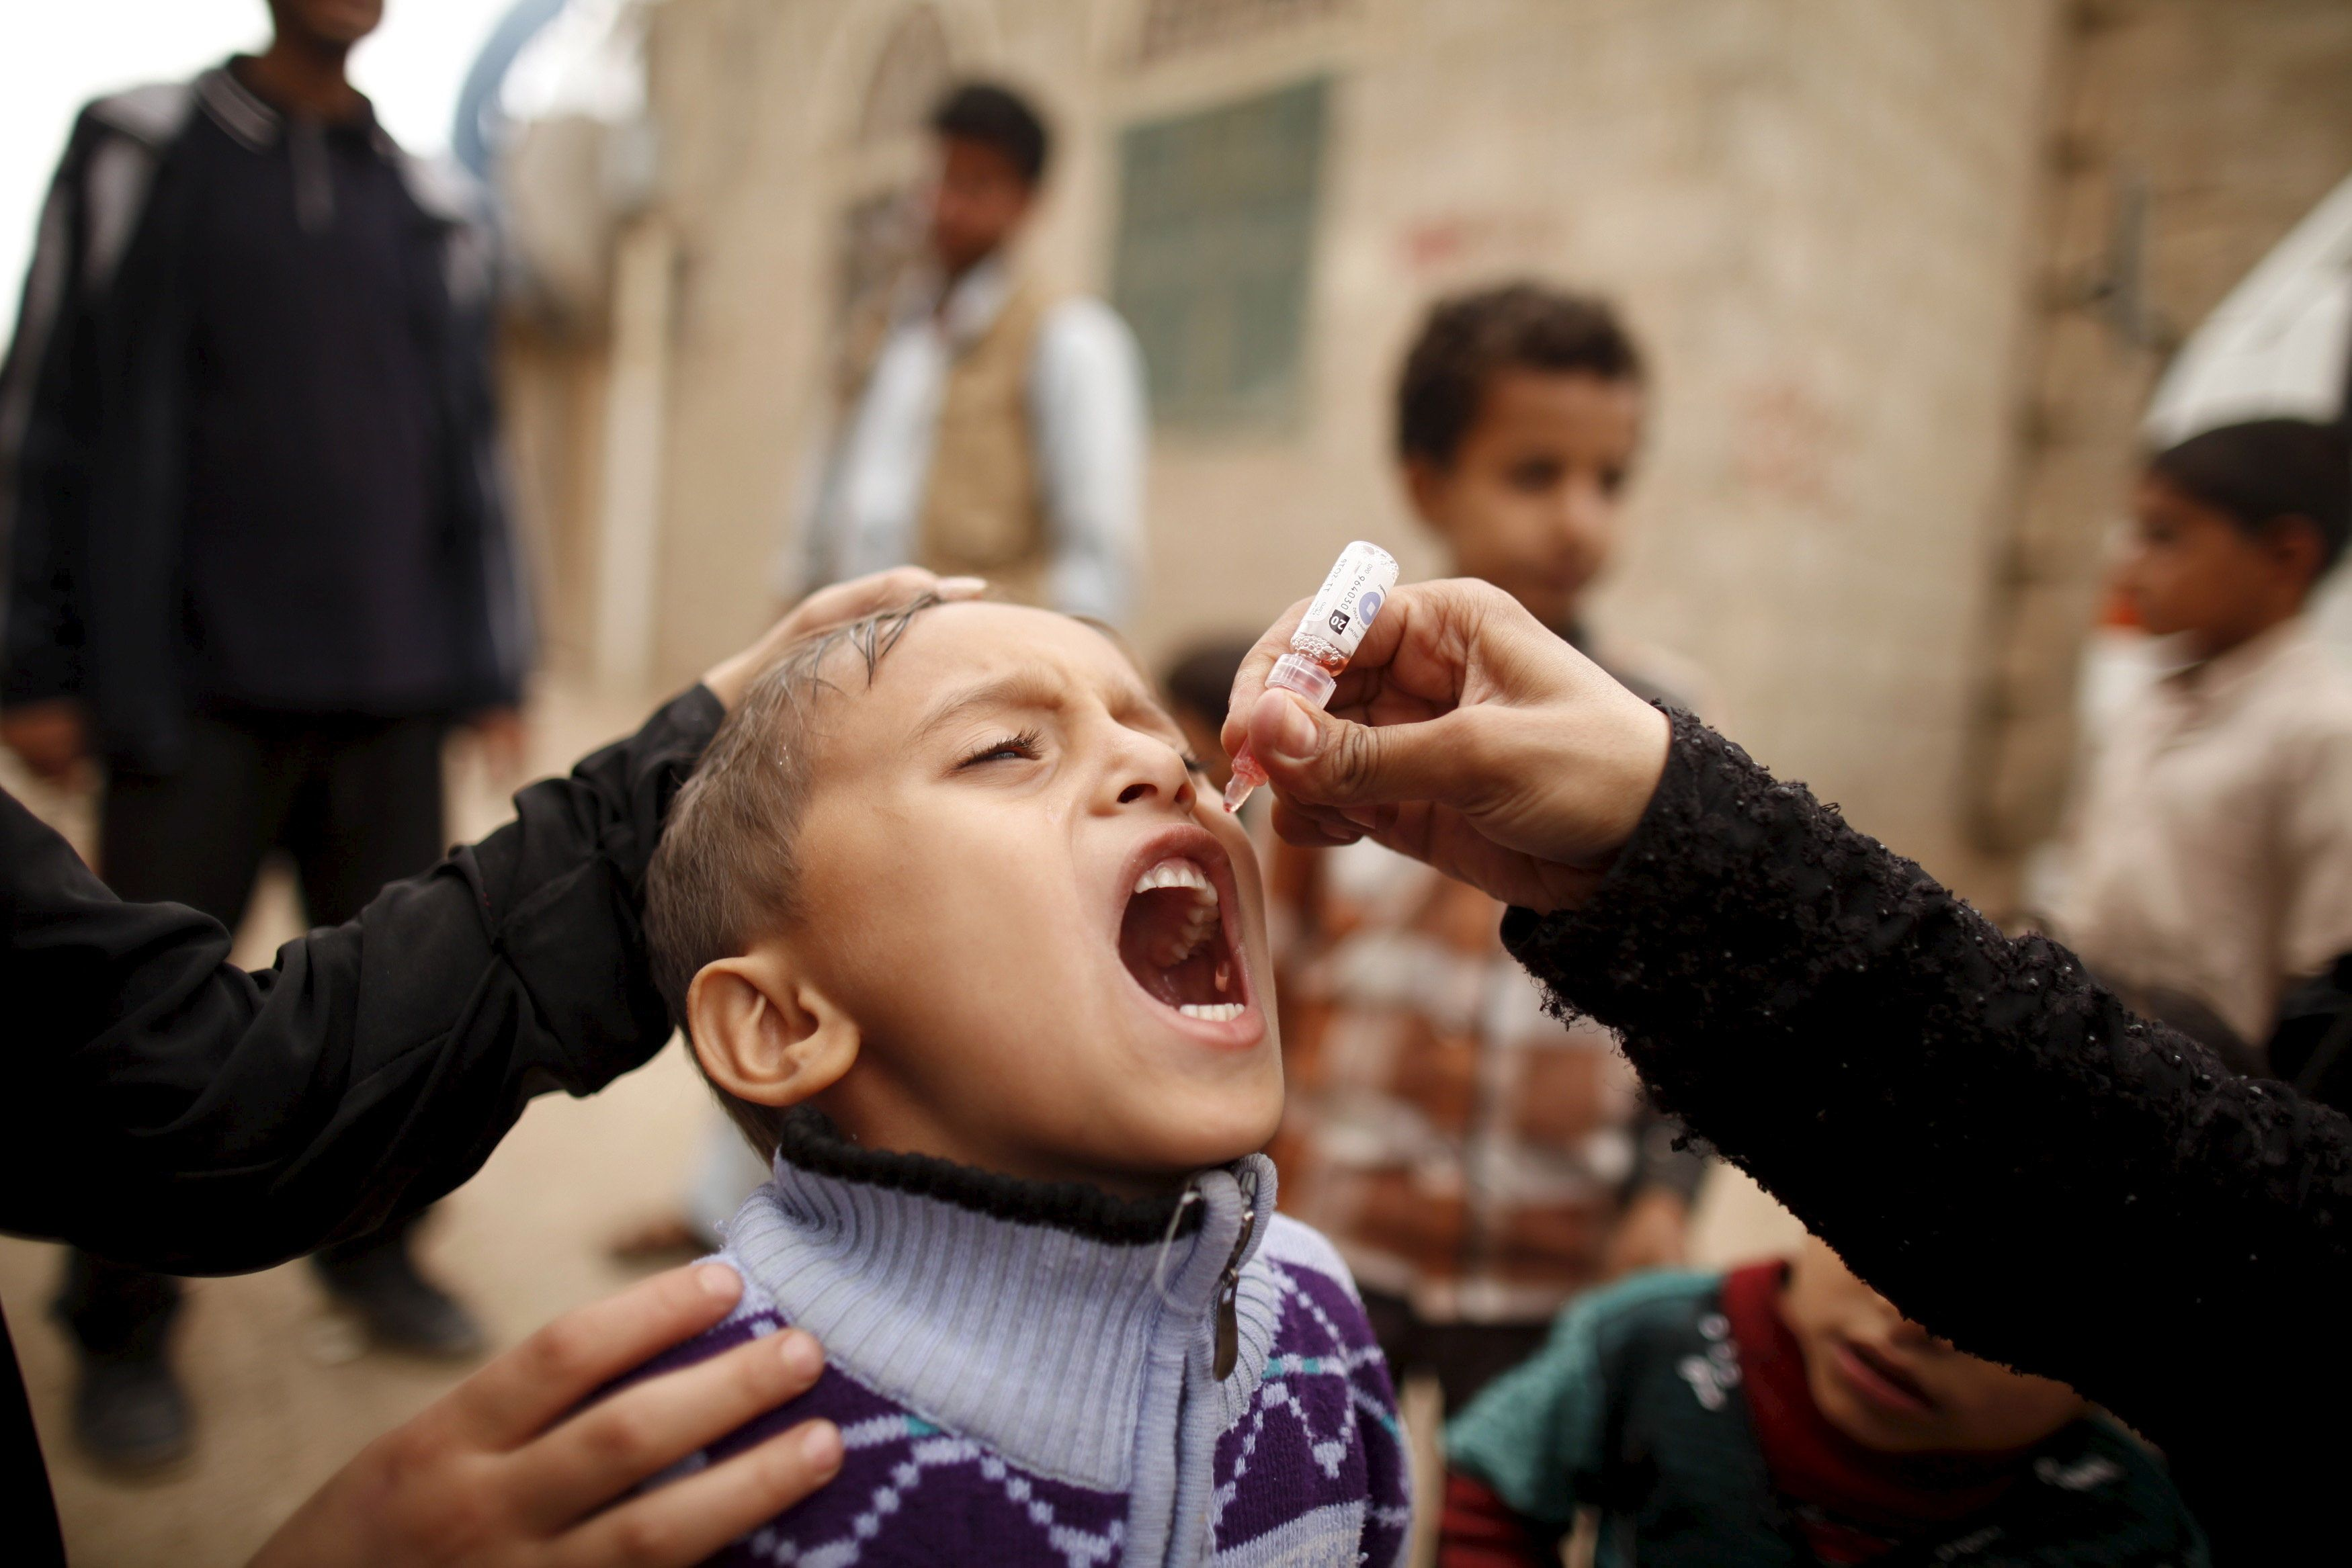 A boy receives polio vaccination drops during a house-to-house vaccination campaign in Yemen's capital Sanaa April 10, 2016. REUTERS/Khaled Abdullah